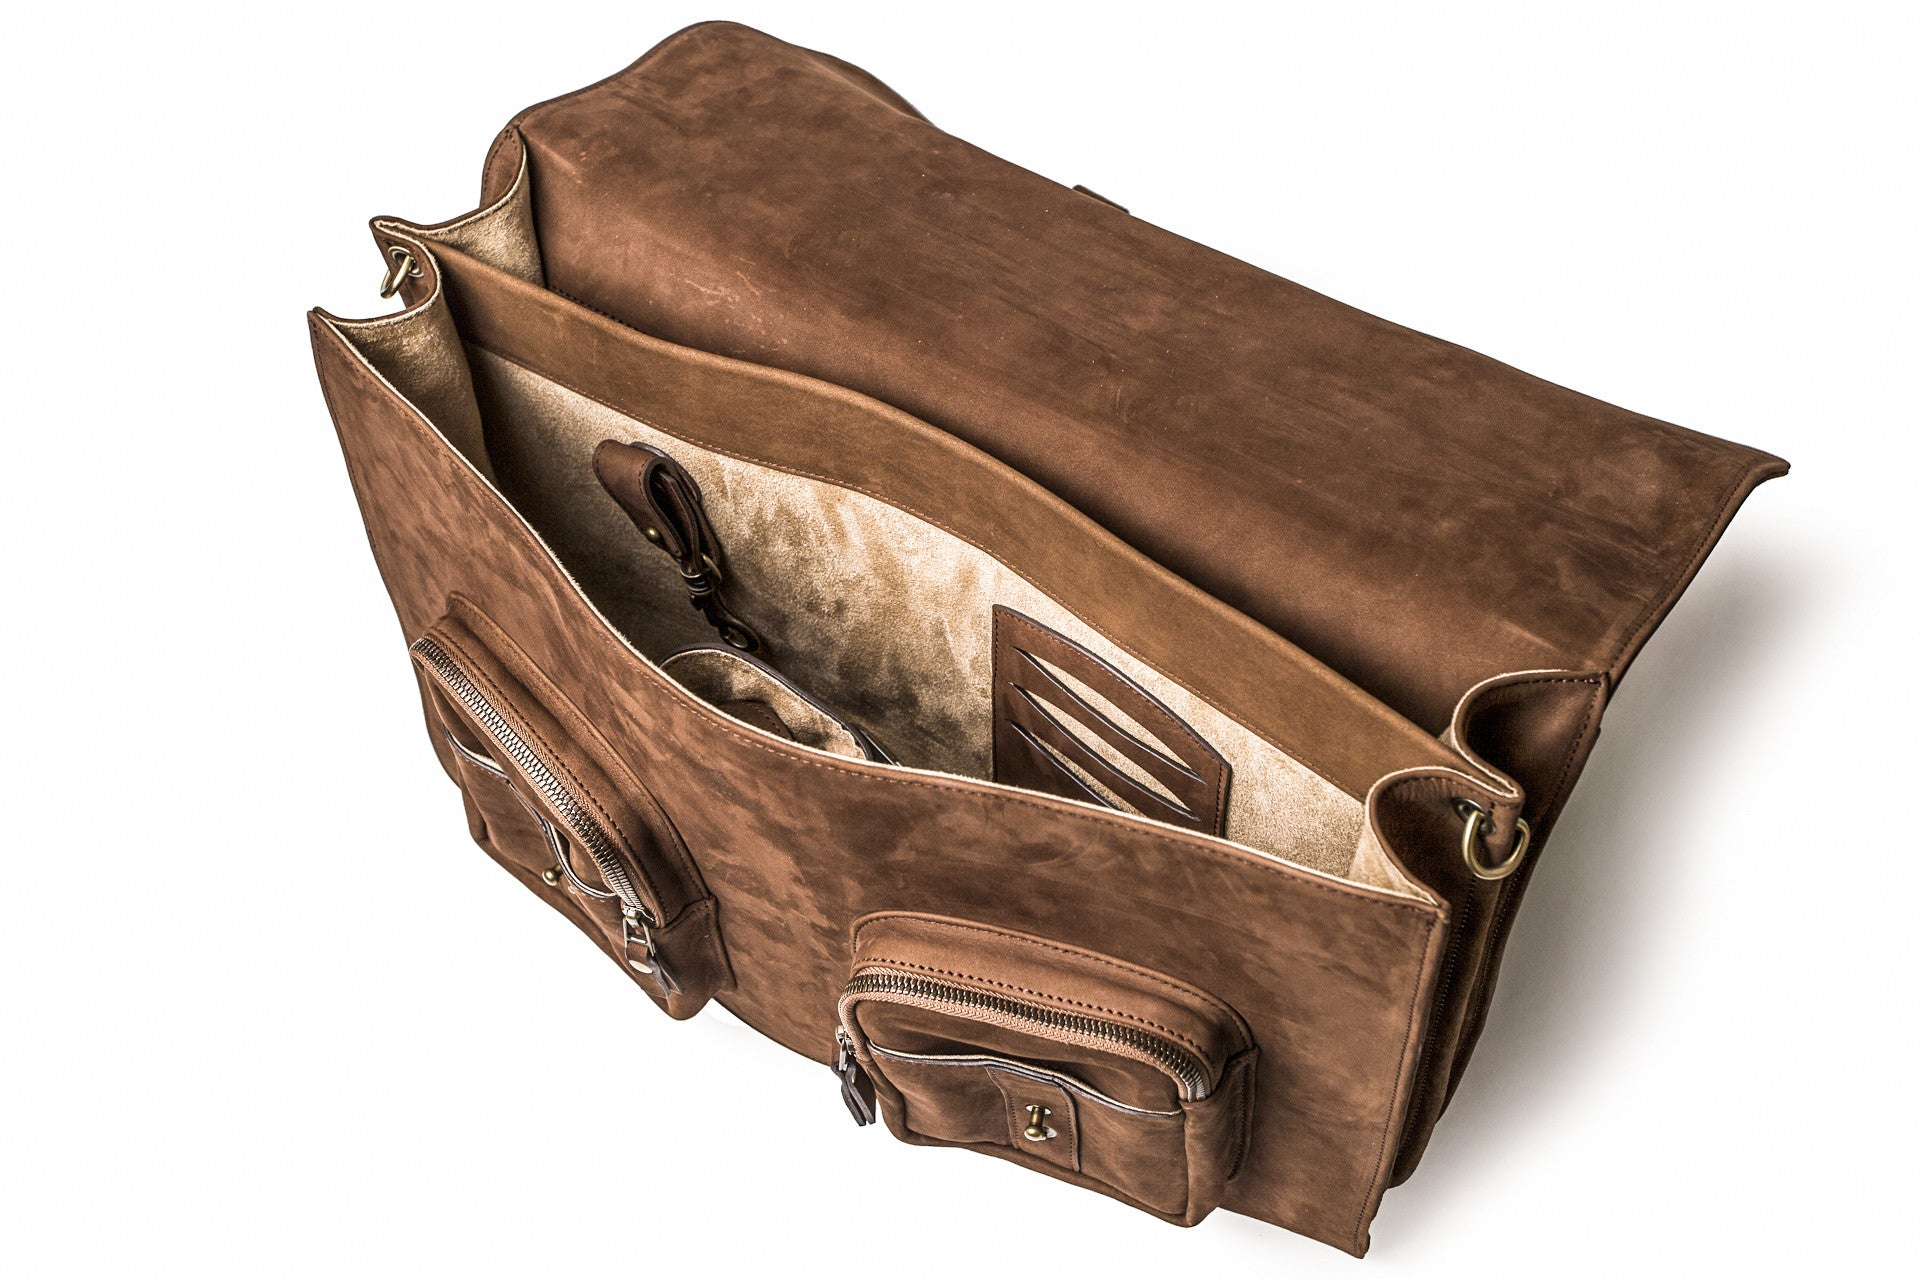 KANZEK's leather laptop satchel is a highly functional messenger bag with two exterior zippered pockets and two interior compartments